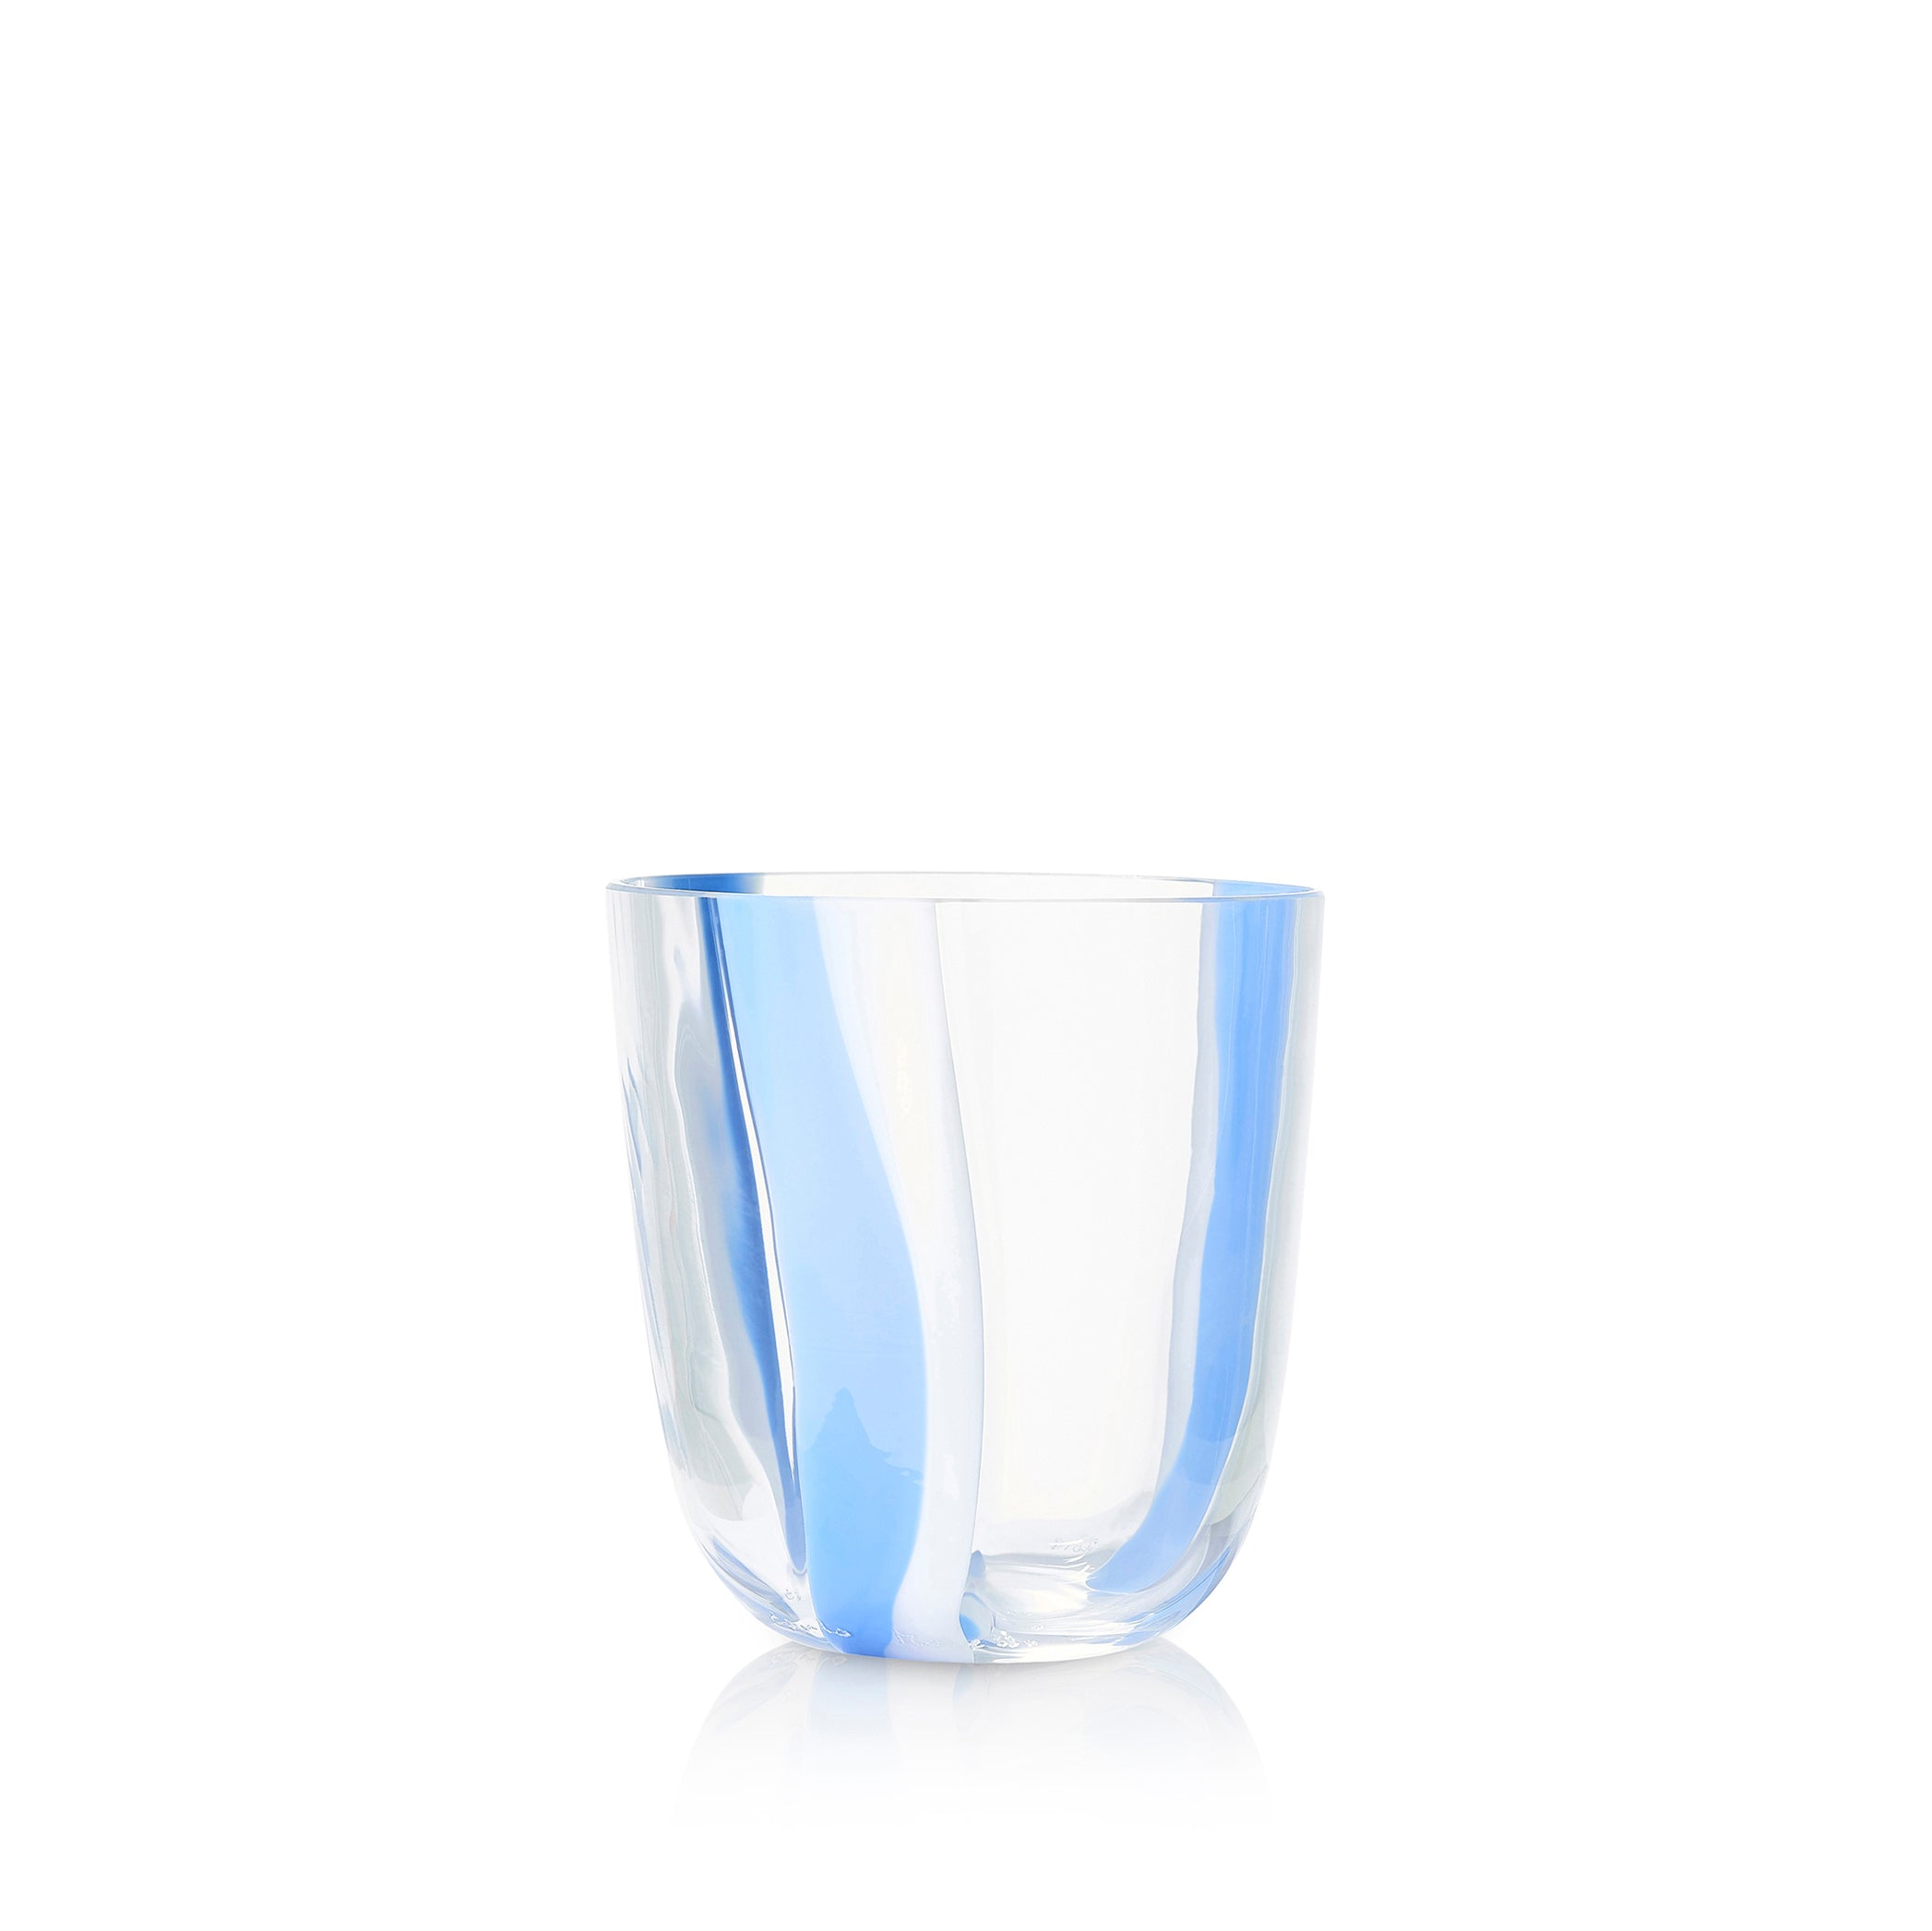 Set of Eight Handblown Stripe Glass Tumblers in Powder Blue & White